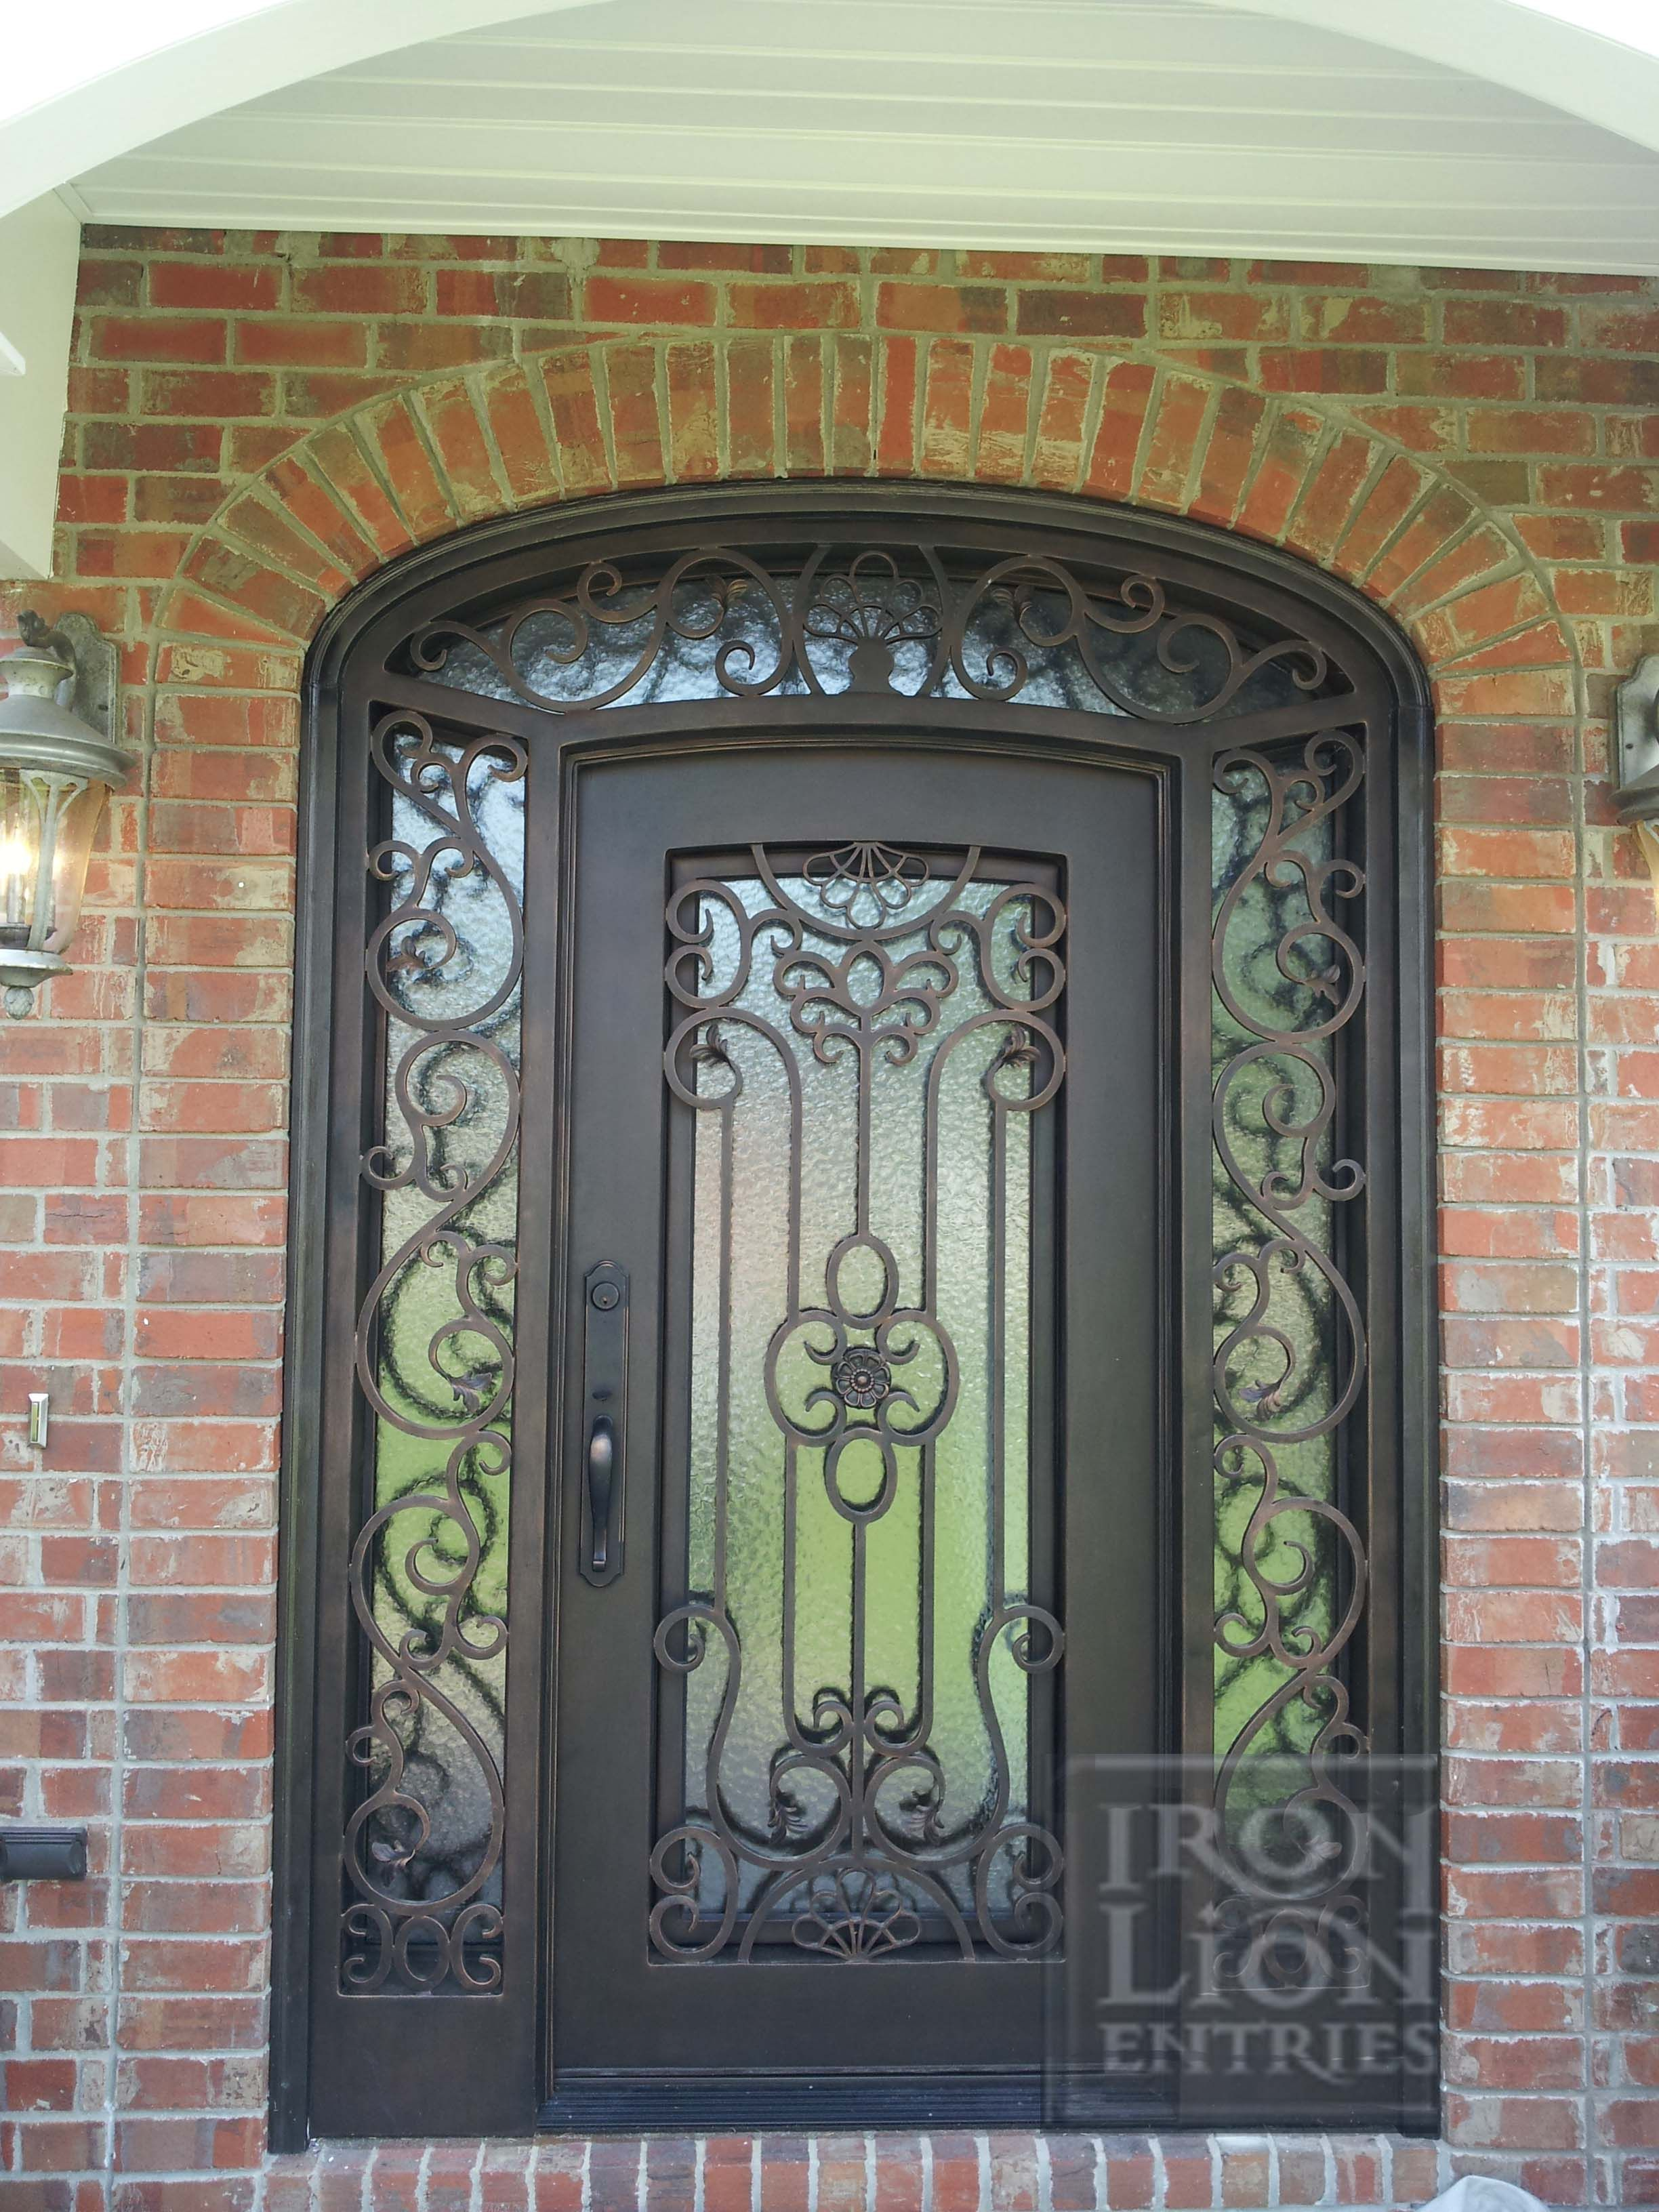 Wrought Iron Entry Door Ironentrydoor Iron Door Custom Single